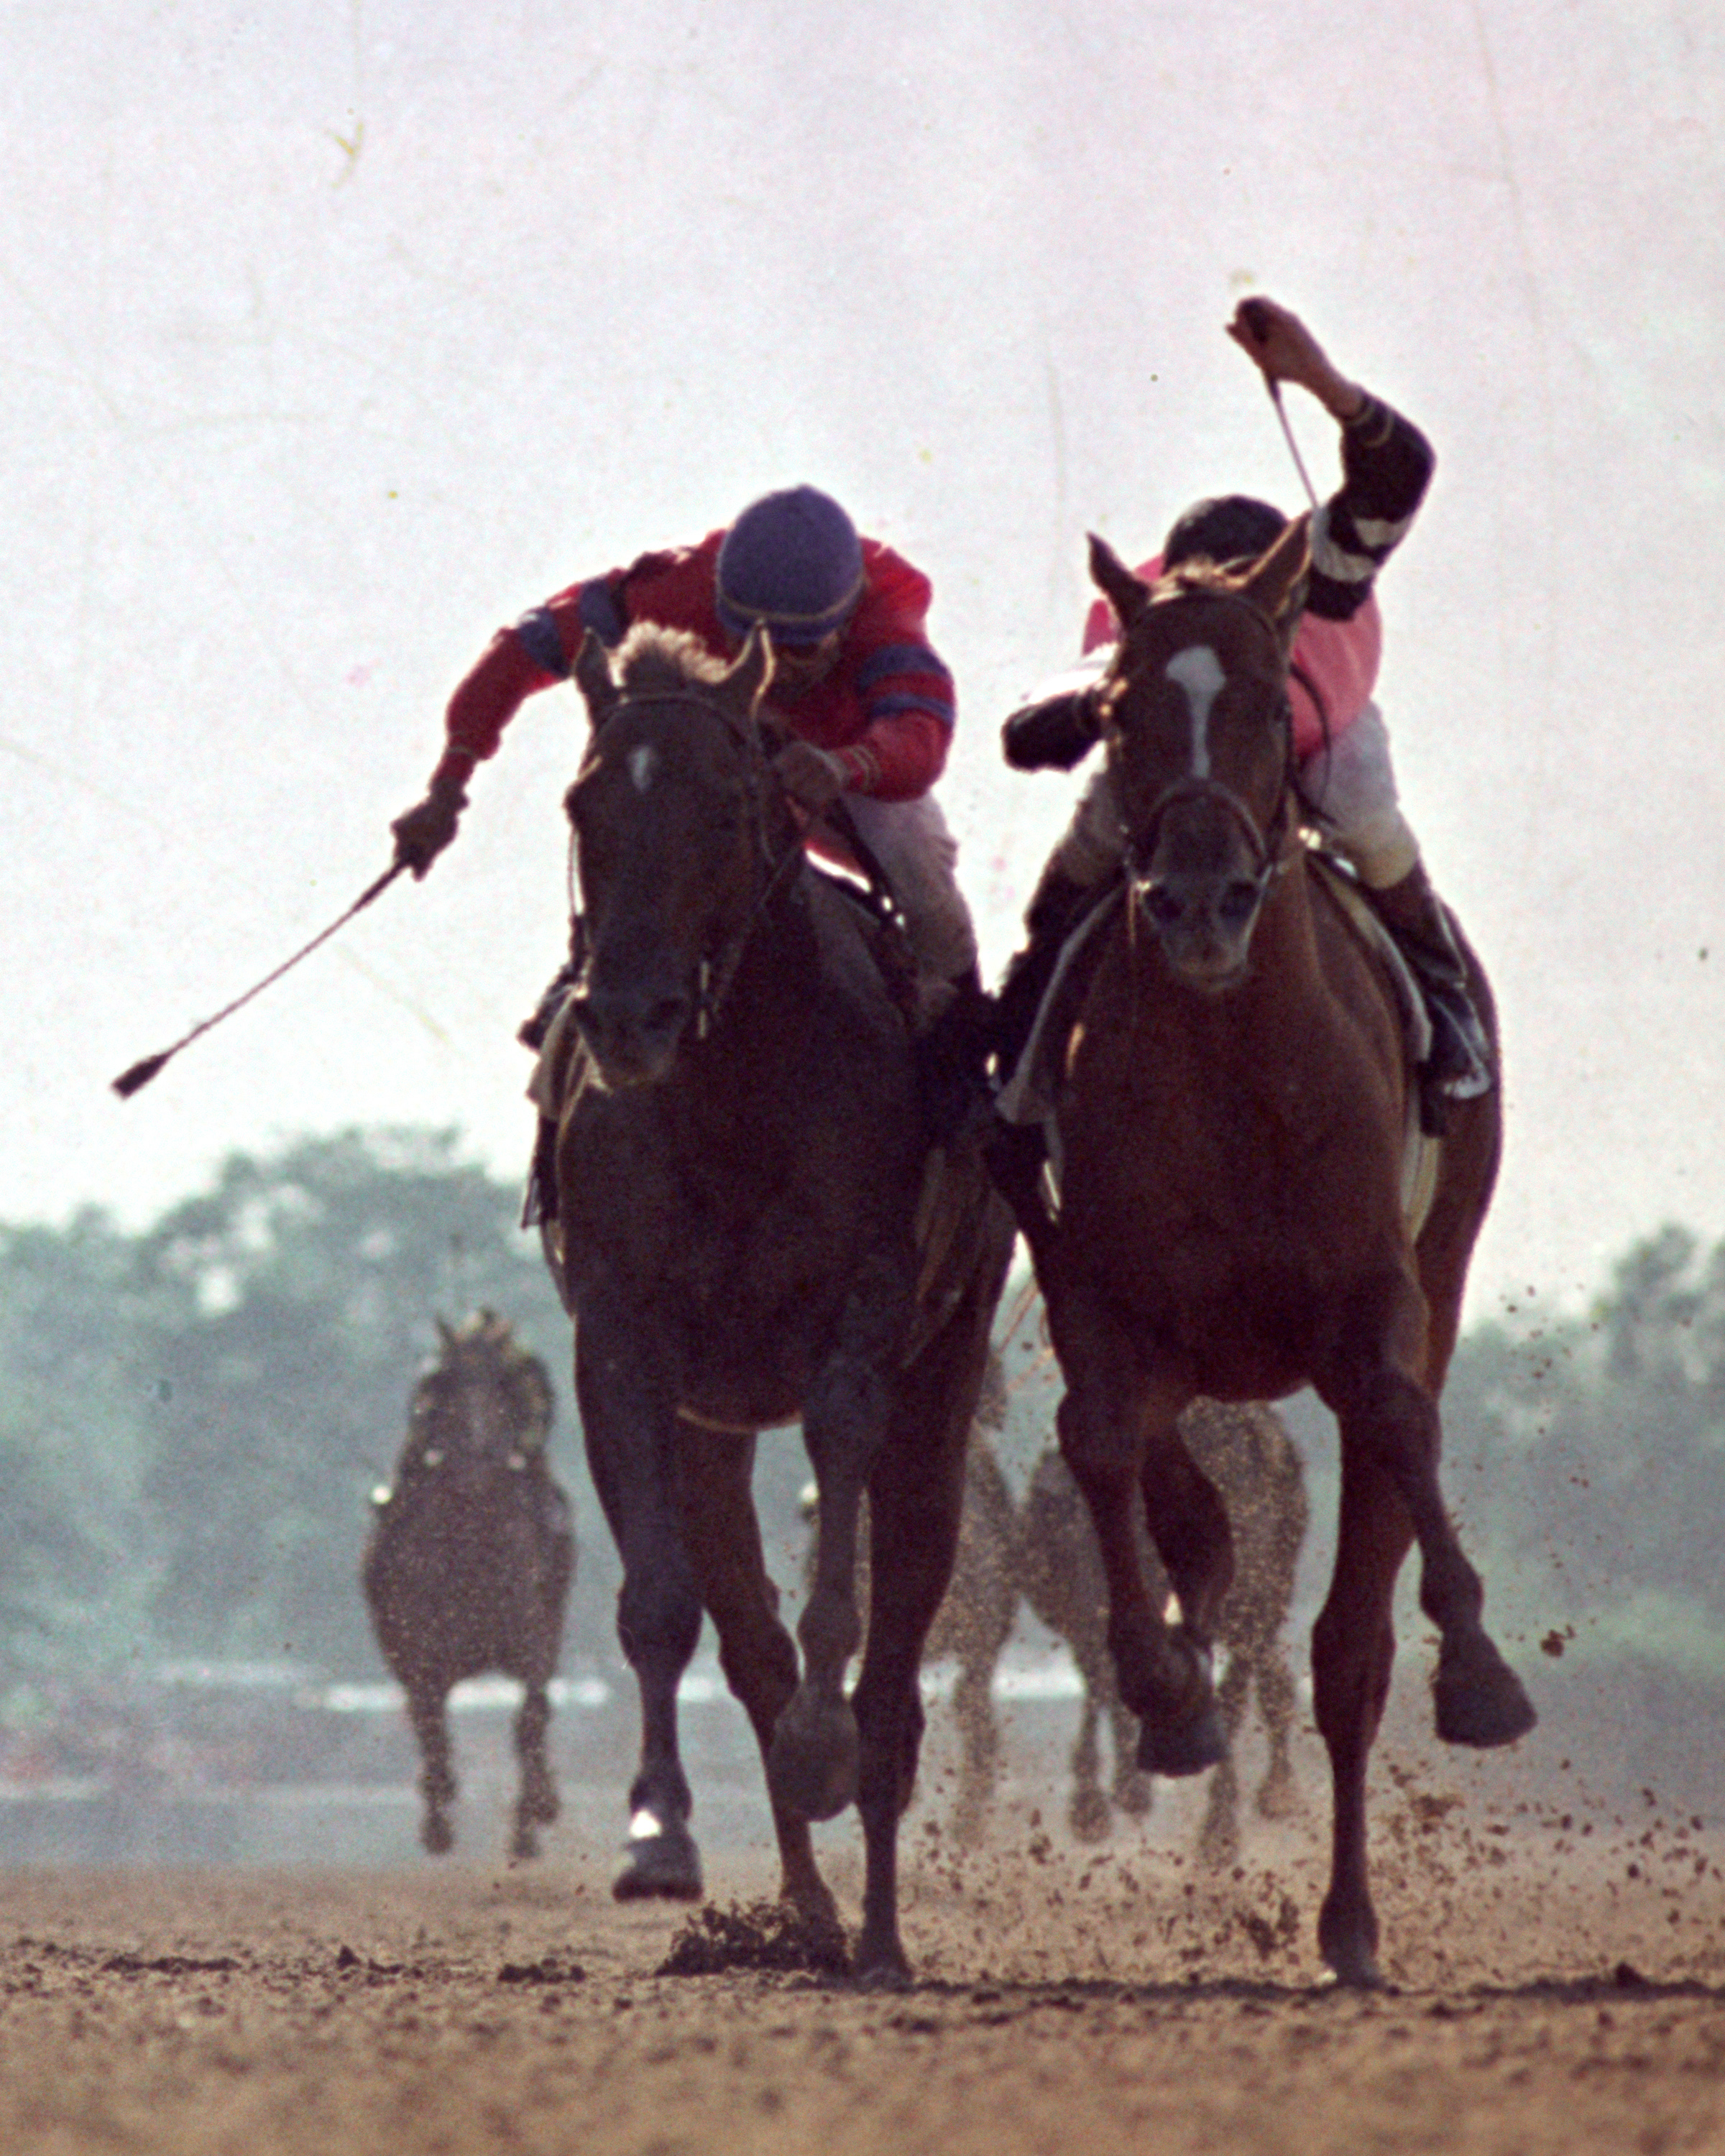 Affirmed (Steve Cauthen up) dueling Alydar (Jorge Velasquez up) for the win in the 1978 Belmont Stakes, becoming the 11th Triple Crown winner in history (NYRA/Bob Coglianese /Museum Collection)